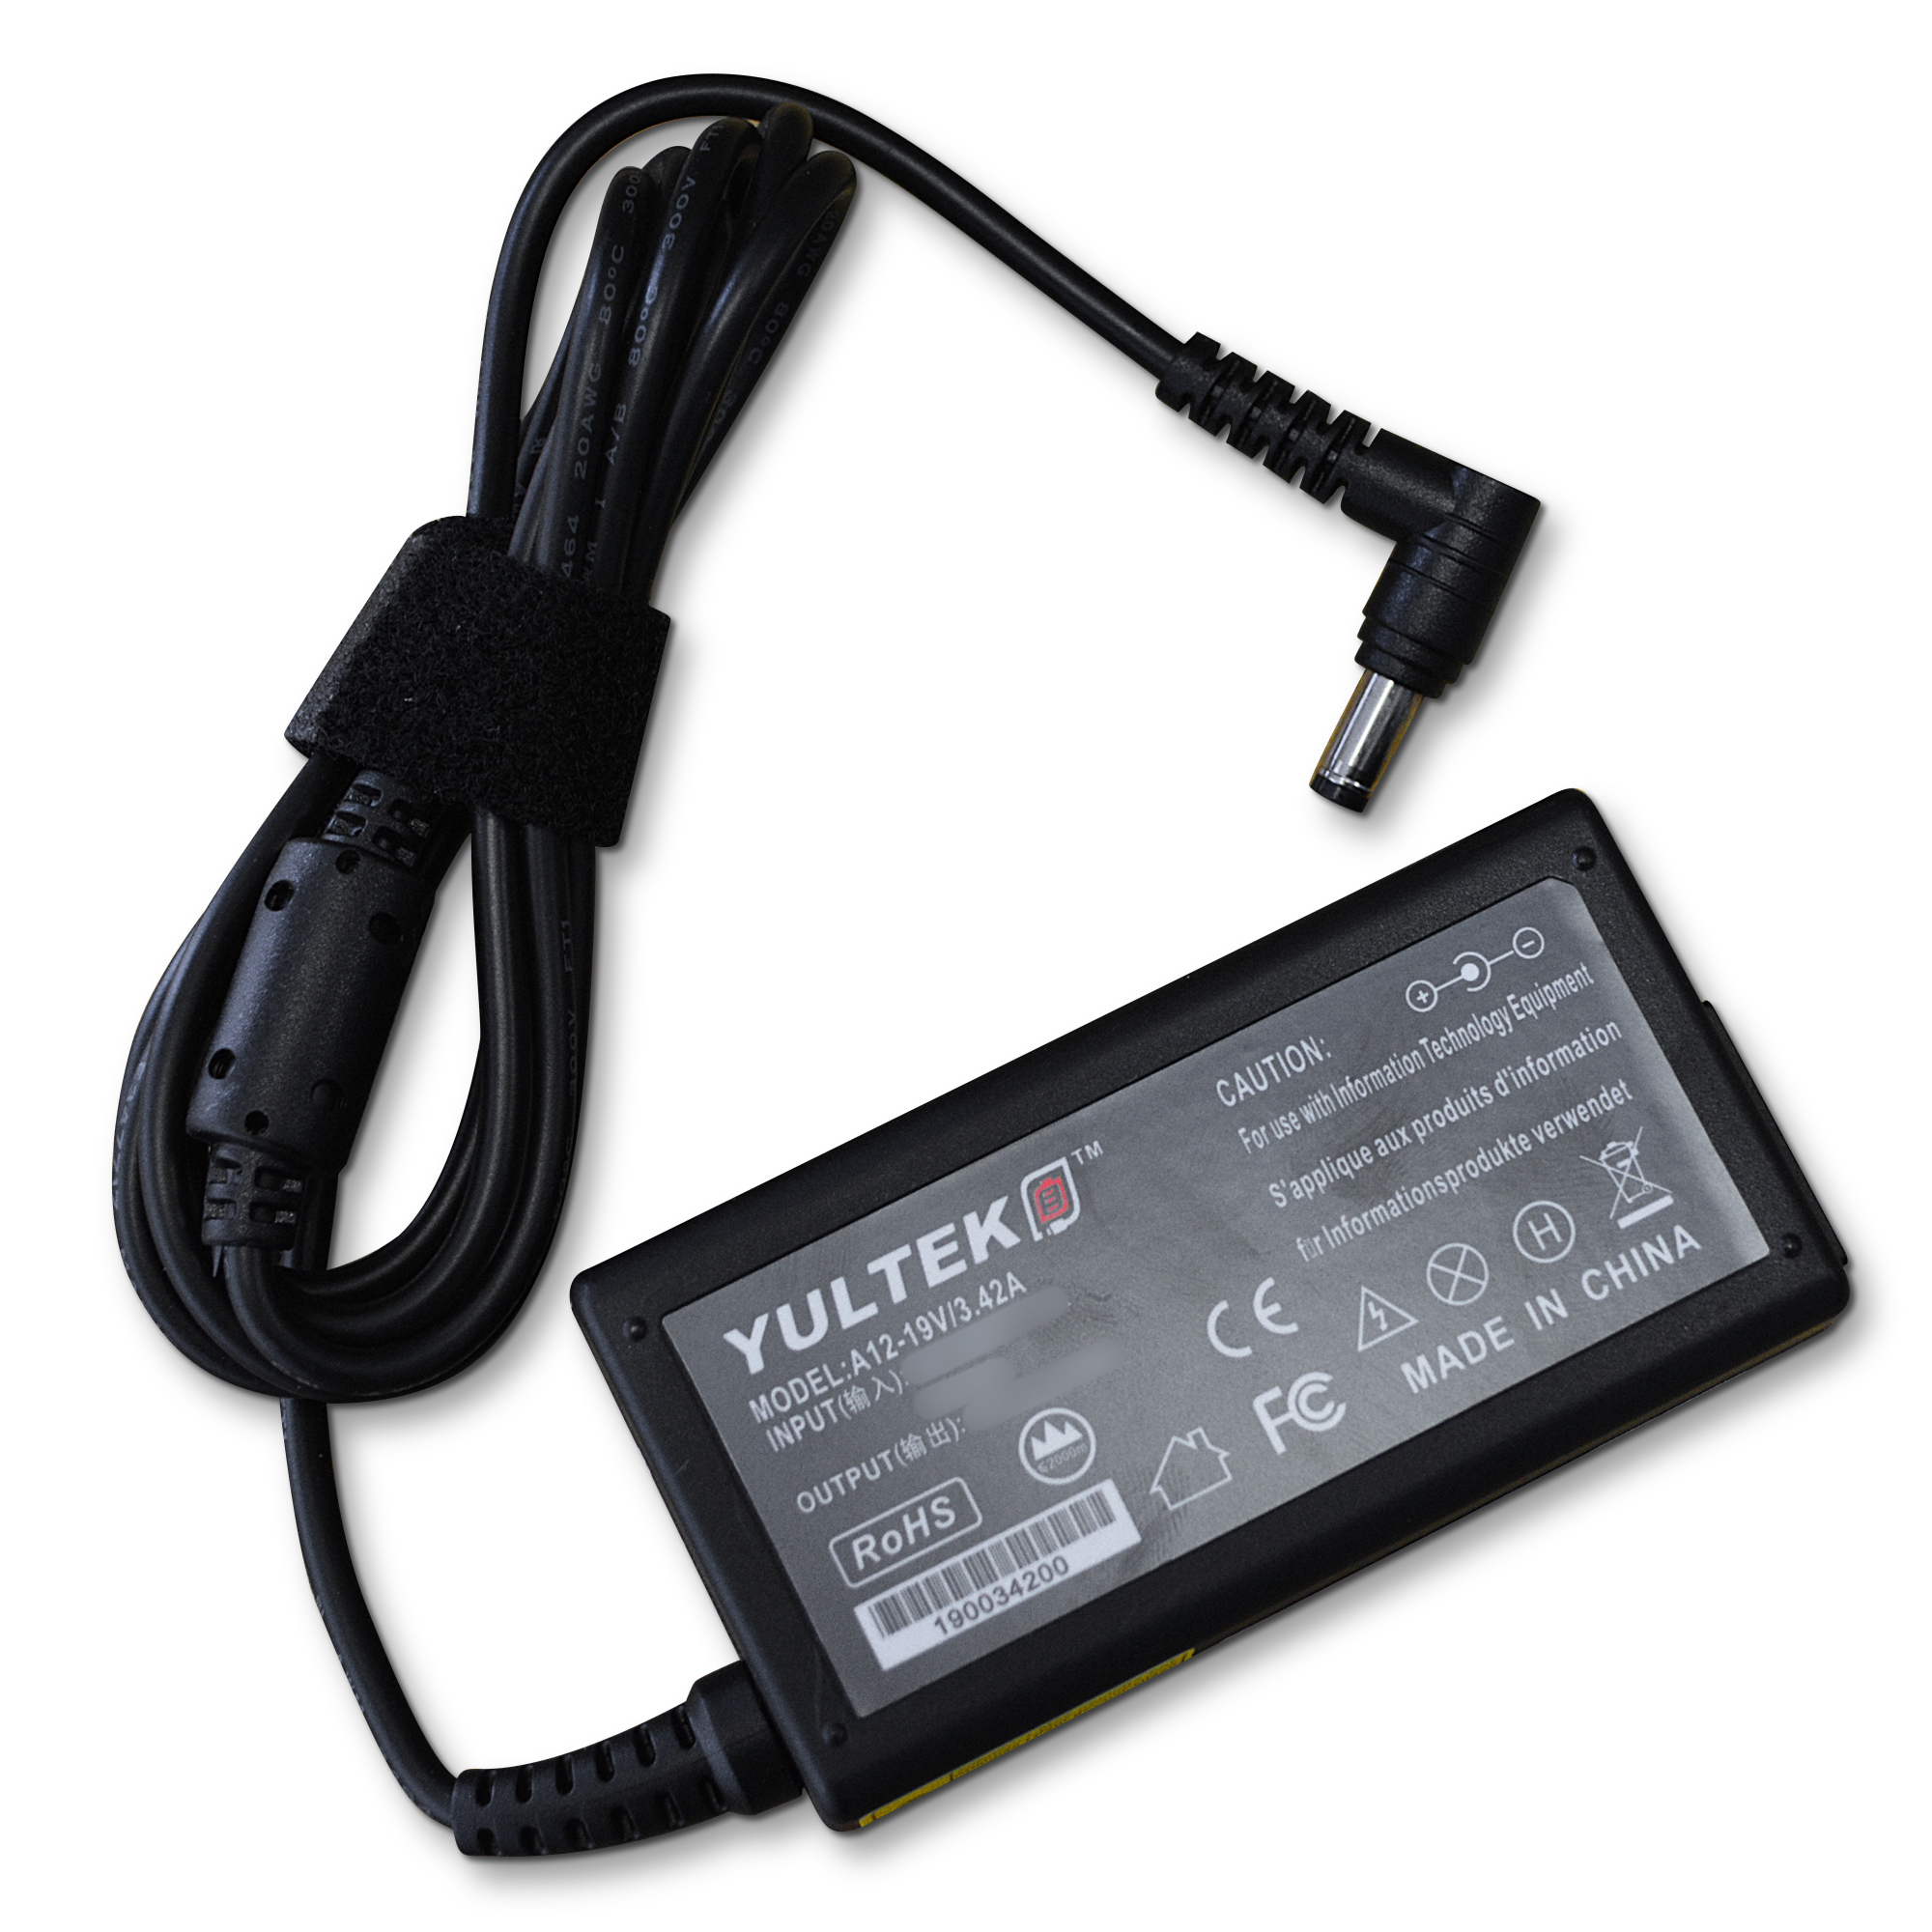 Fujitsu-Siemens Part Number QUT:1AC0ZZZ0FX0 Laptop Charger